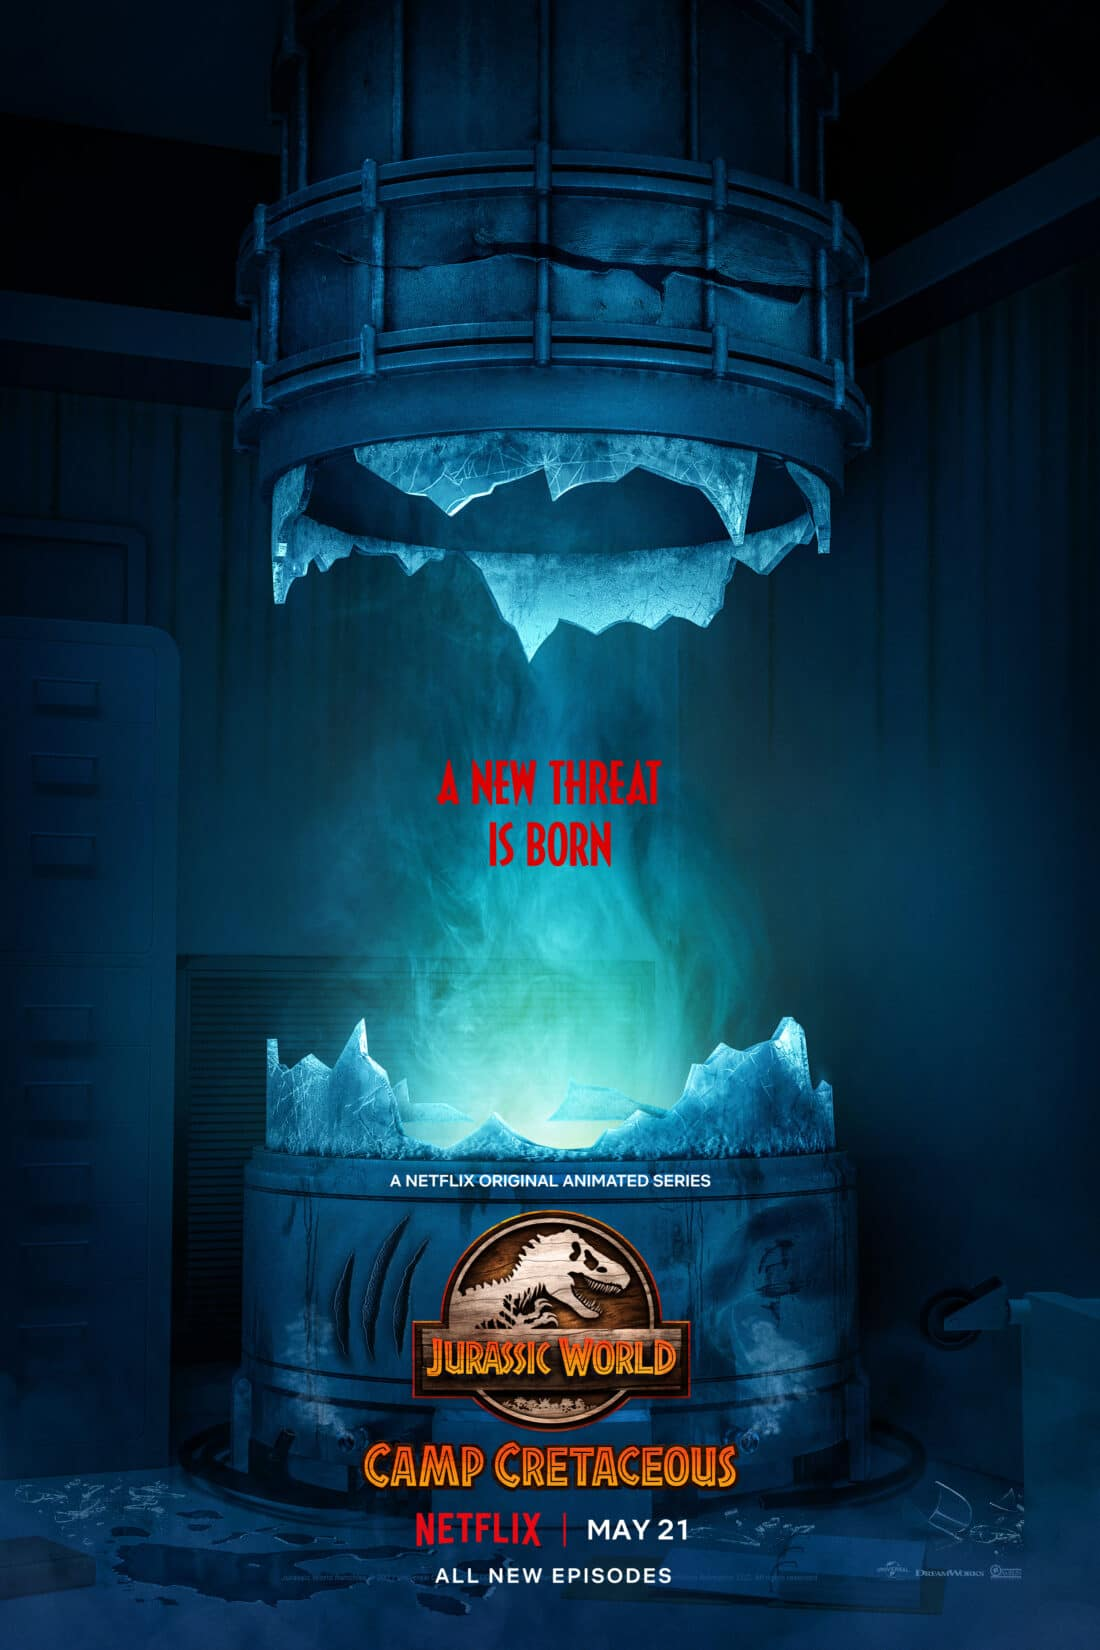 Calling all dinosaur fans! Jurassic World: Camp Cretaceous Season 3 is coming back to Netflix on May 21, 2021. Watch as the story continues with 10 new episodes set to air on Netflix. This third season reveals a new, sinister threat will emerge on Isla Nublar.